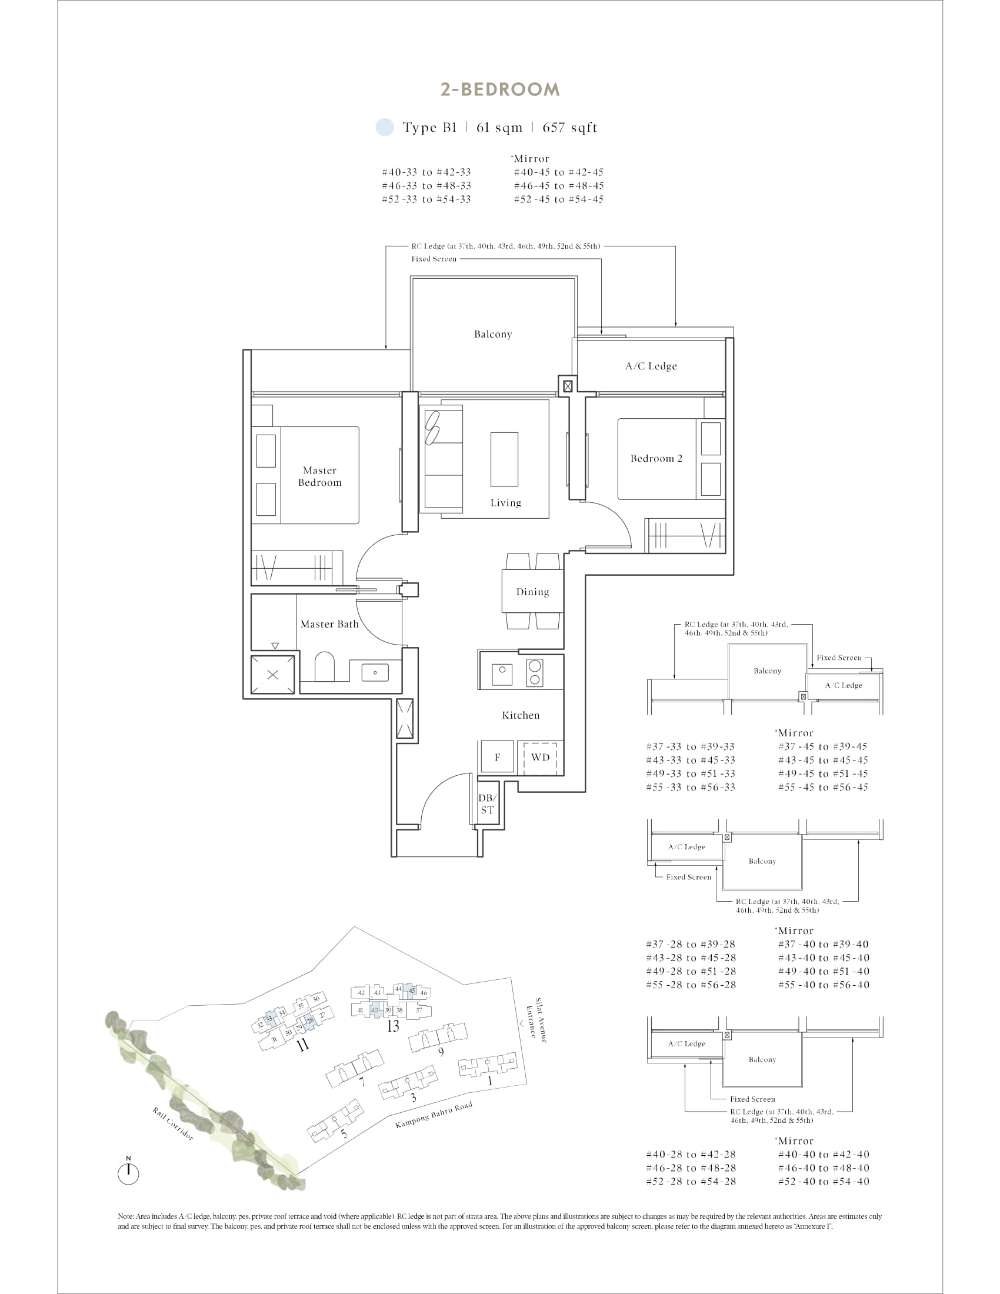 Site And Floor Plan Avenue South Residence Official Website Bernard Koh Sustainable Building Design Residences Site Plan